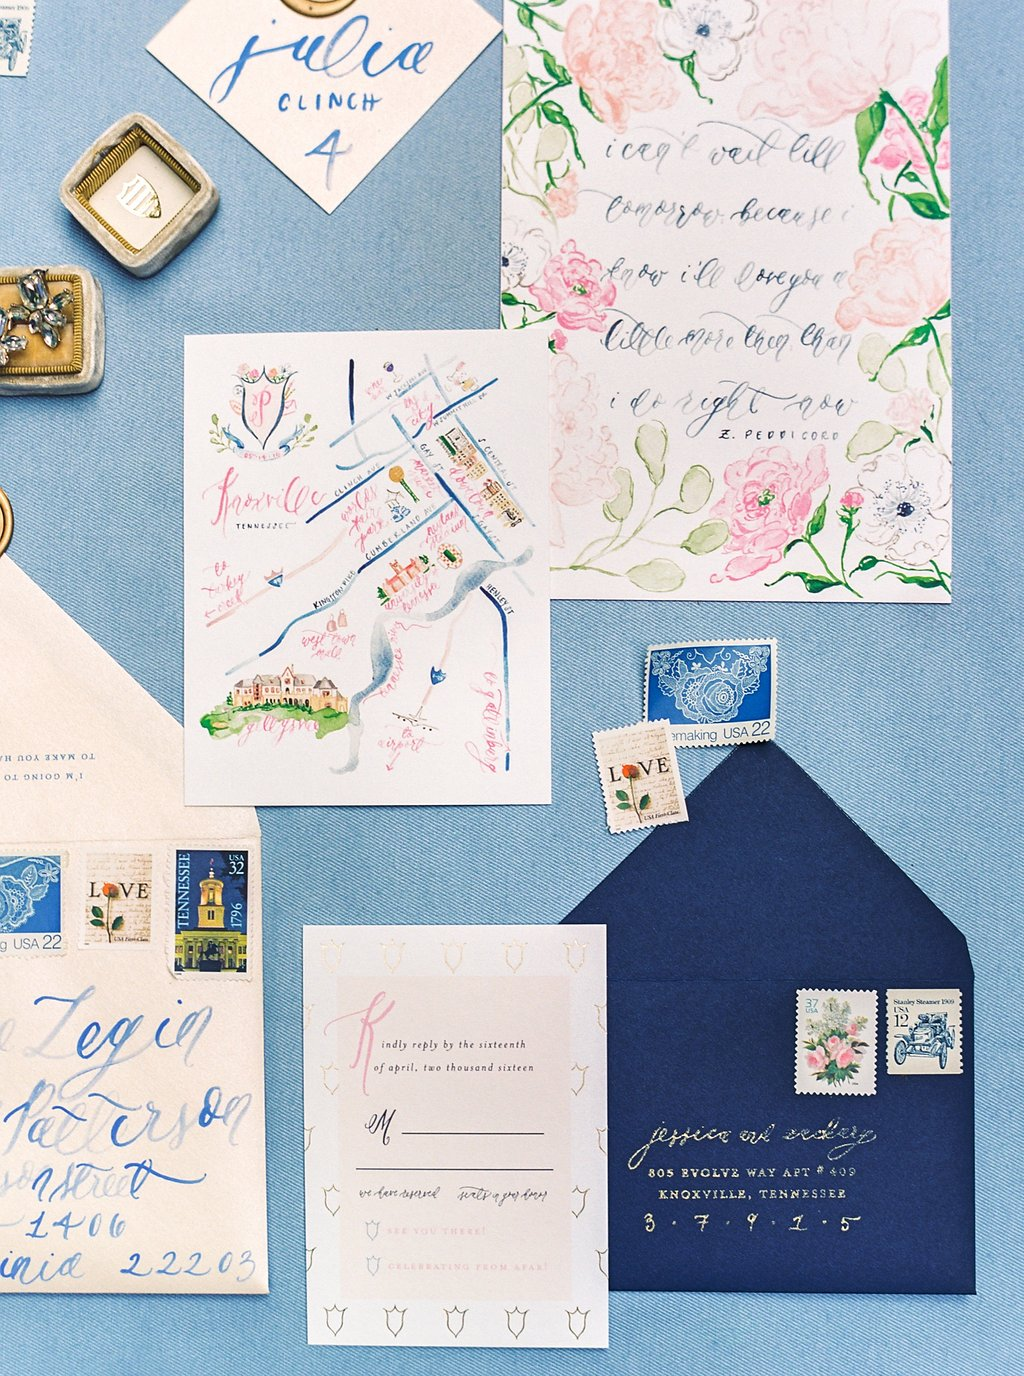 Custom Watercolor Floral and Gold Foil Wedding Invitations with Watercolor Wedding Map, Custom Watercolor Wedding Crest, Gold Wax Seal and Calligraphy Envelope Liners Blush and Navy Wedding with Fuchsia, French Blue and Gold Accents | Simply Jessica Marie's Southern Wedding at Gettysvue Golf Course and Country Club in Knoxville Tennessee | Photo by Perry Vaile Photography